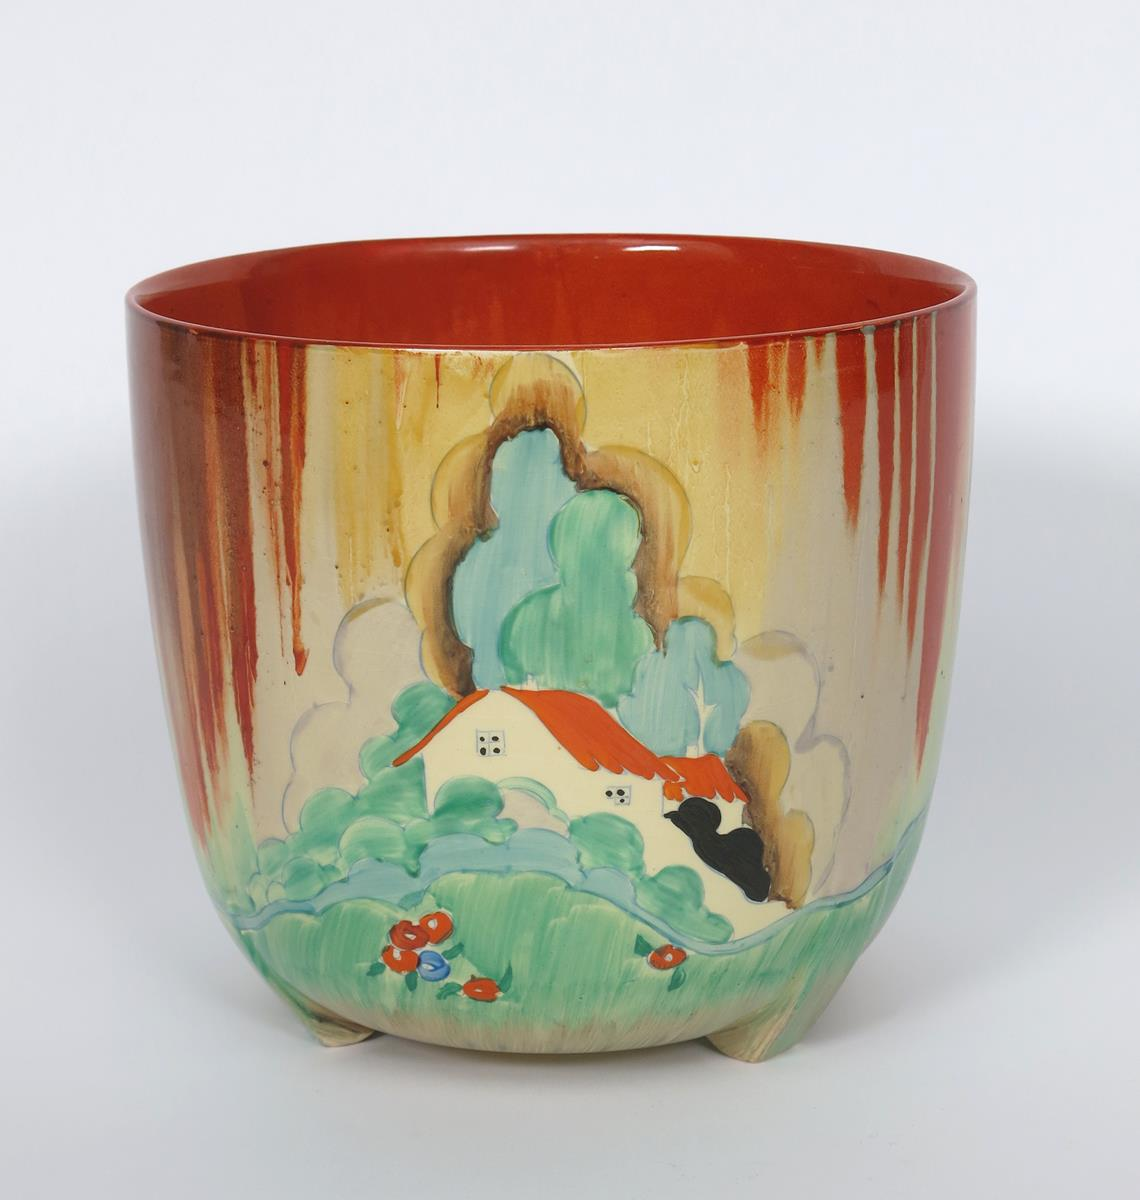 'Forest Glen' a Clarice Cliff Bizarre Dover jardiniere, painted in colours printed factory marks,